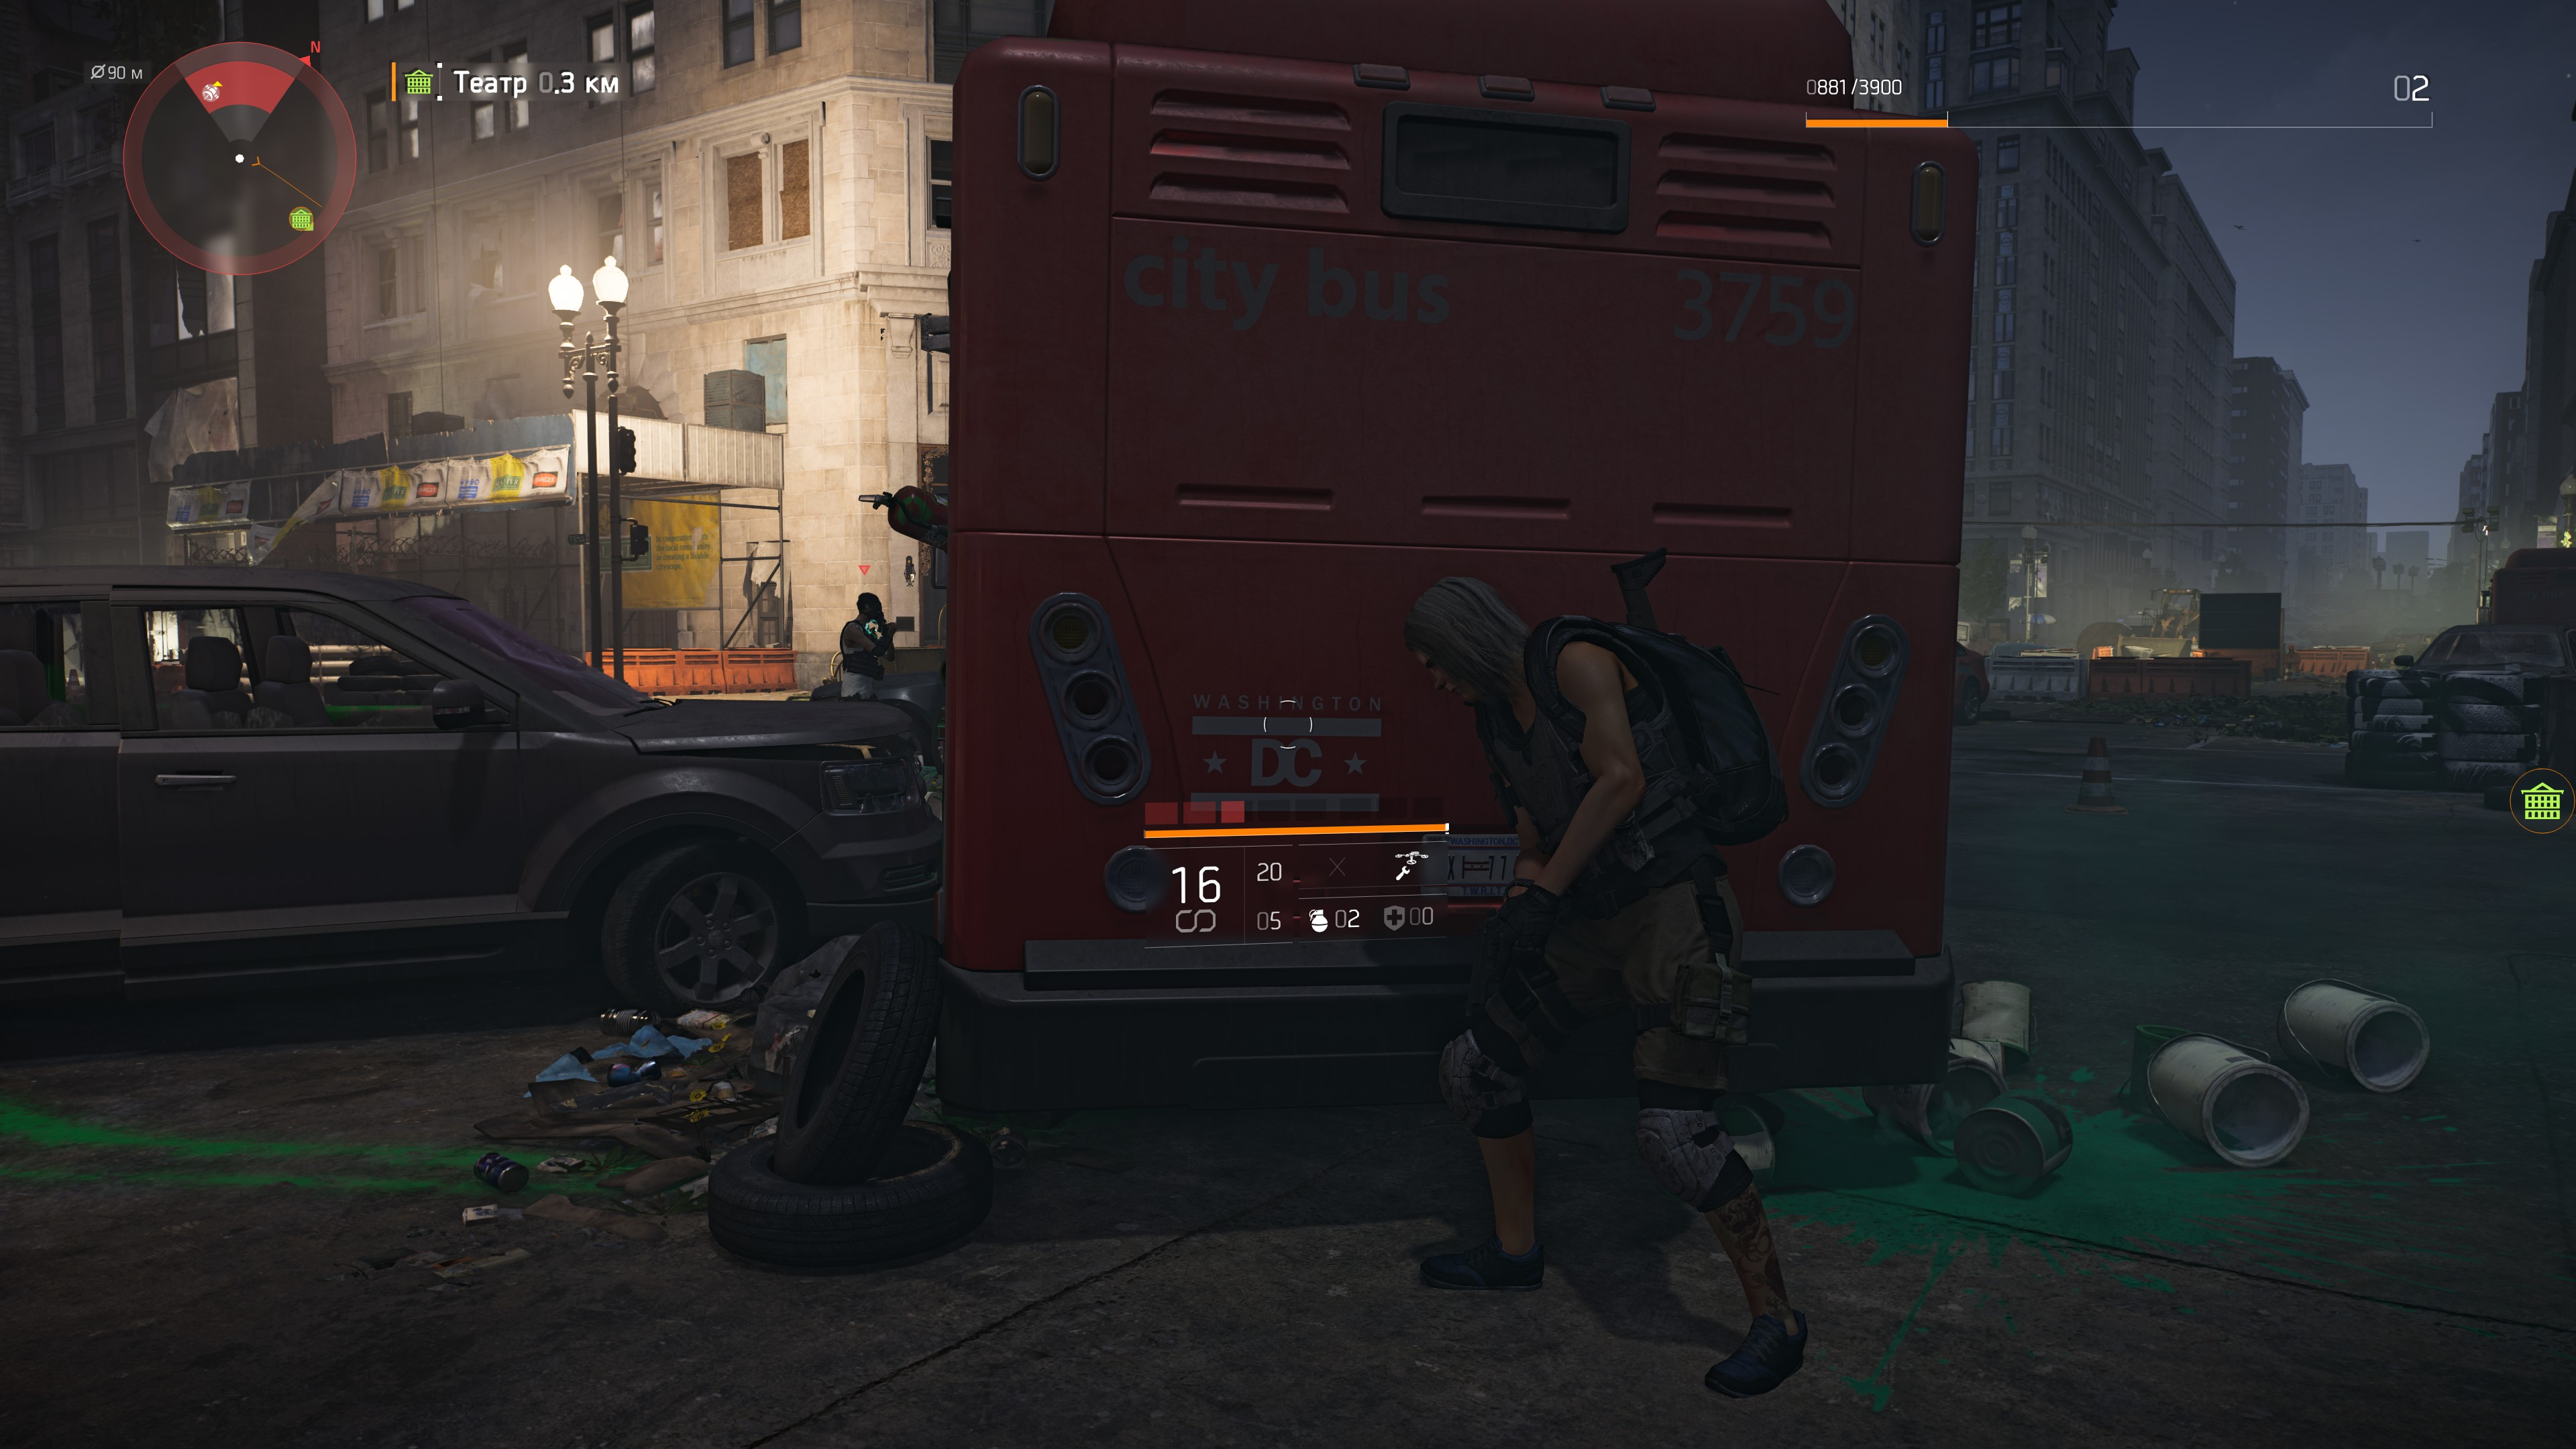 Tom Clancy's The Division® 22020-3-1-7-48-5.jpg - Tom Clancy's The Division 2